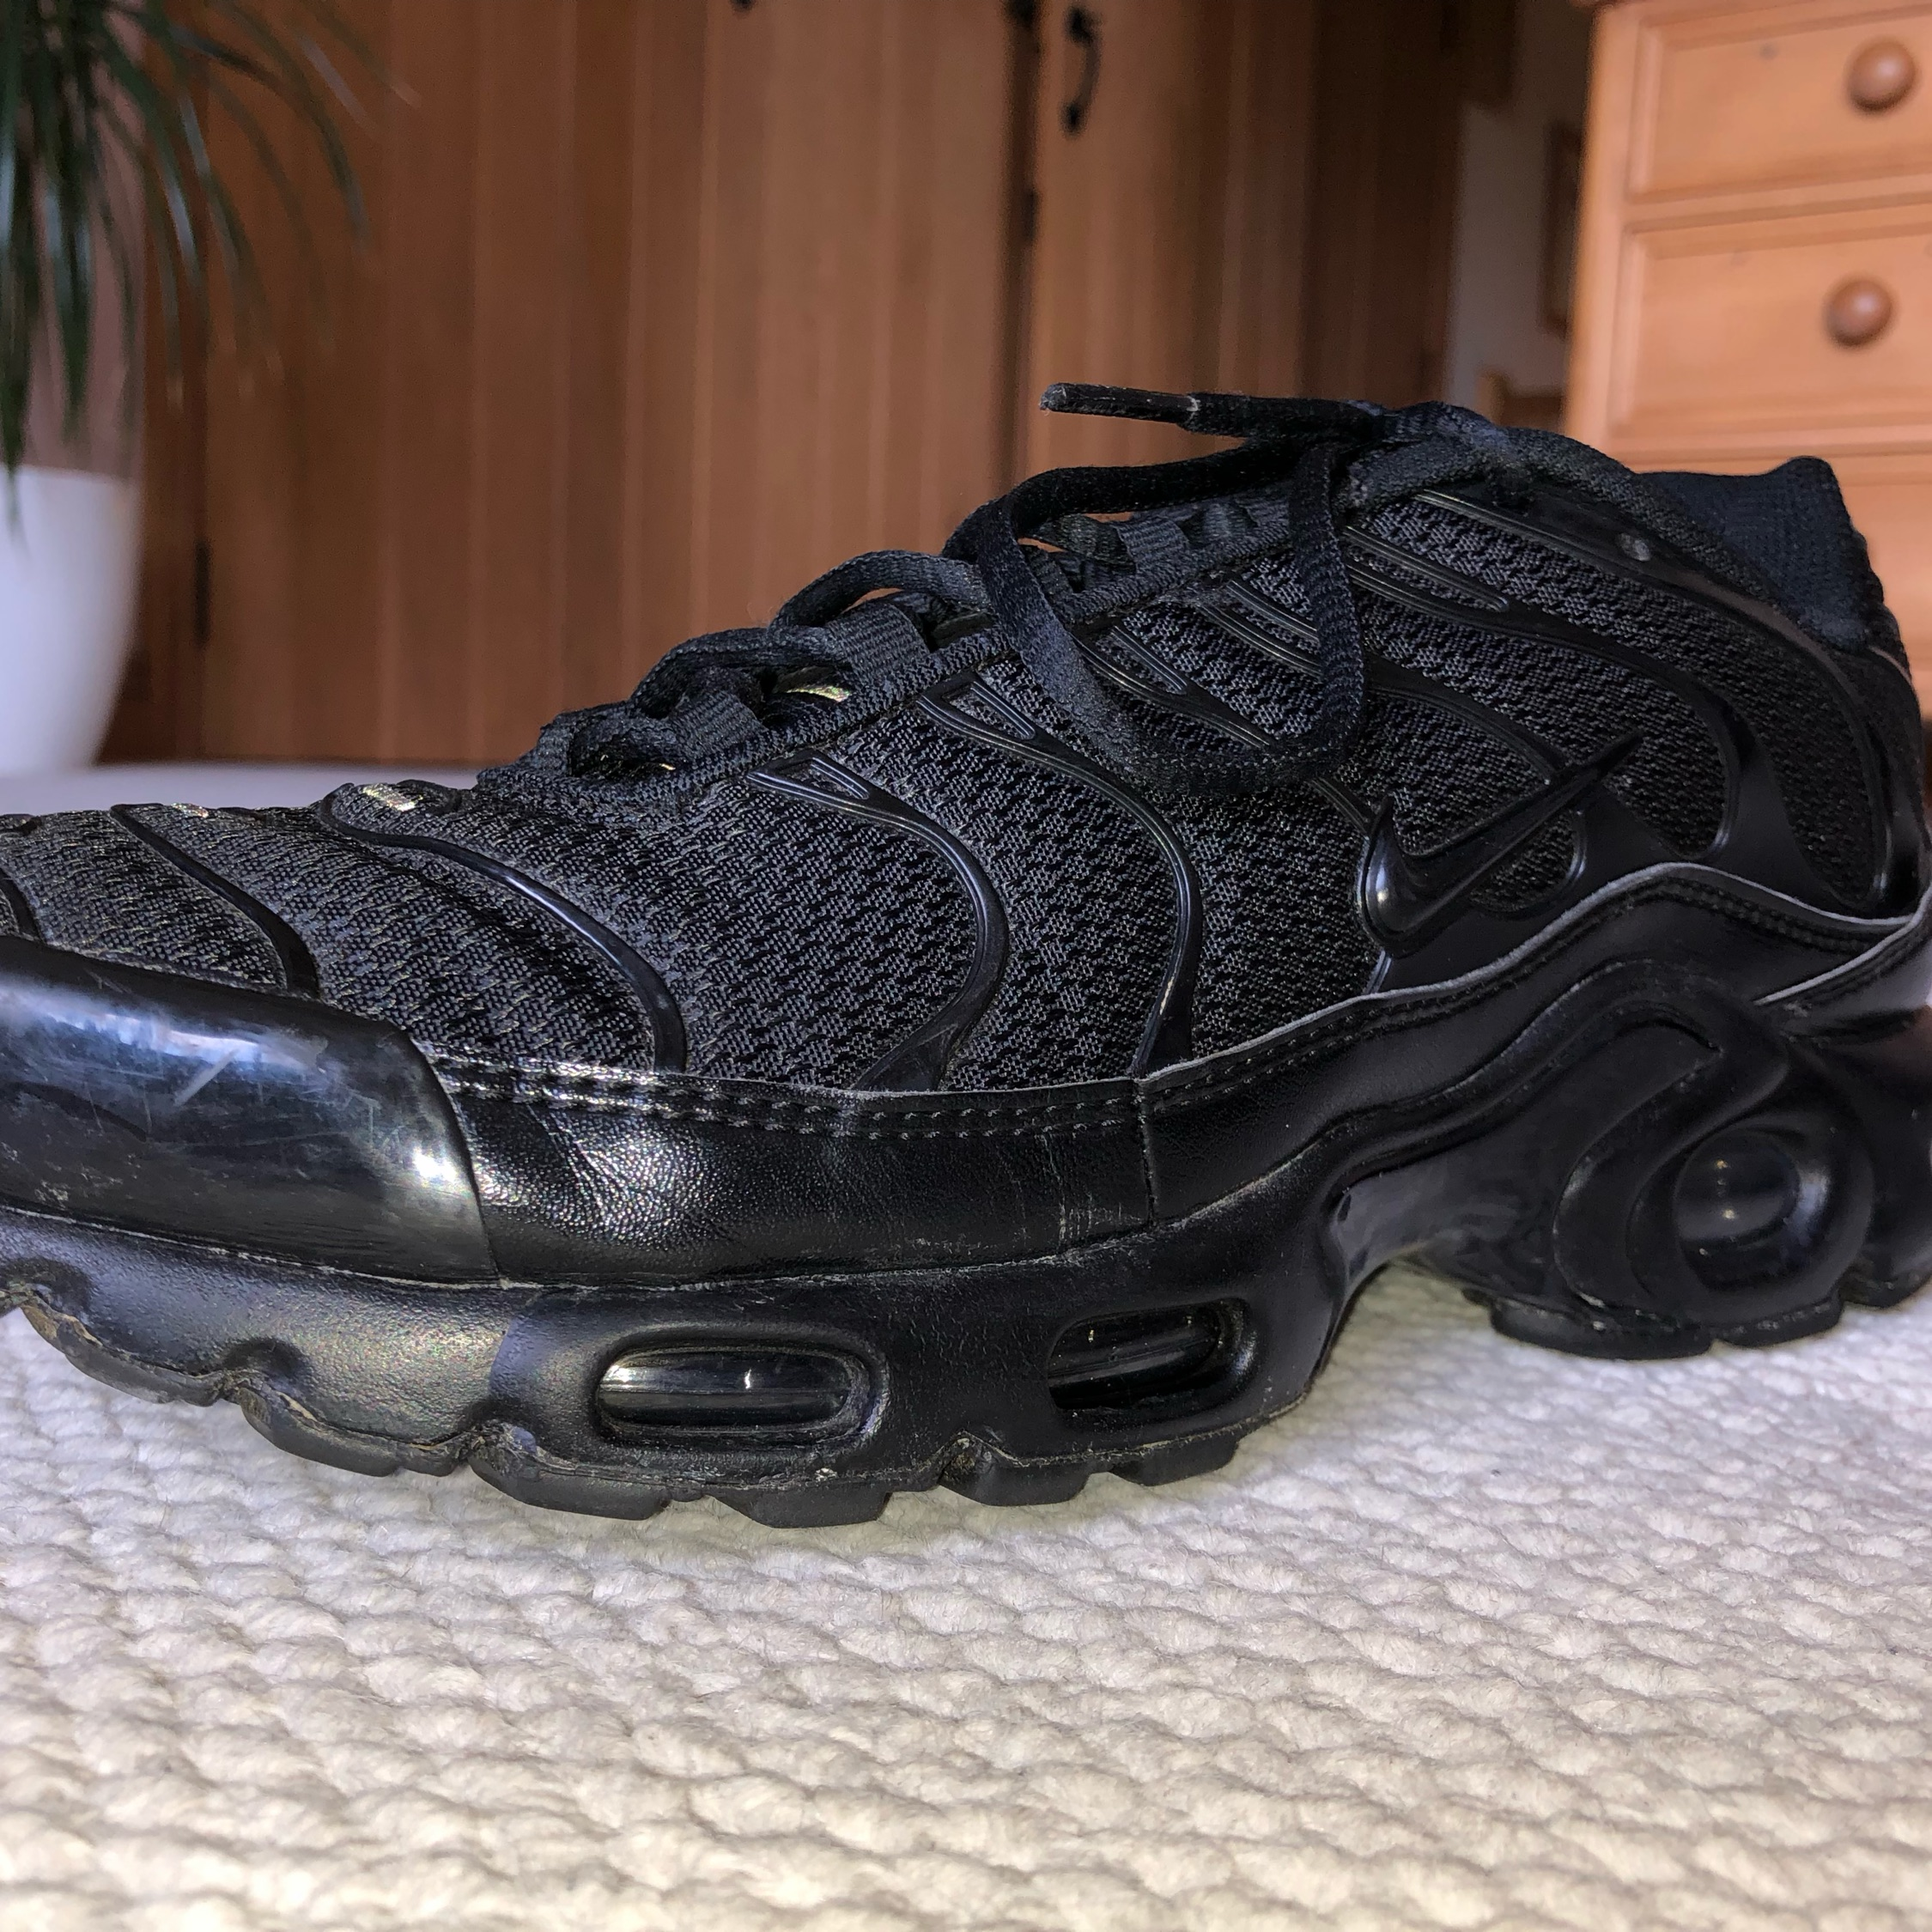 best service 9fe49 0629b Nike Tn Air Max All Black Uk 7